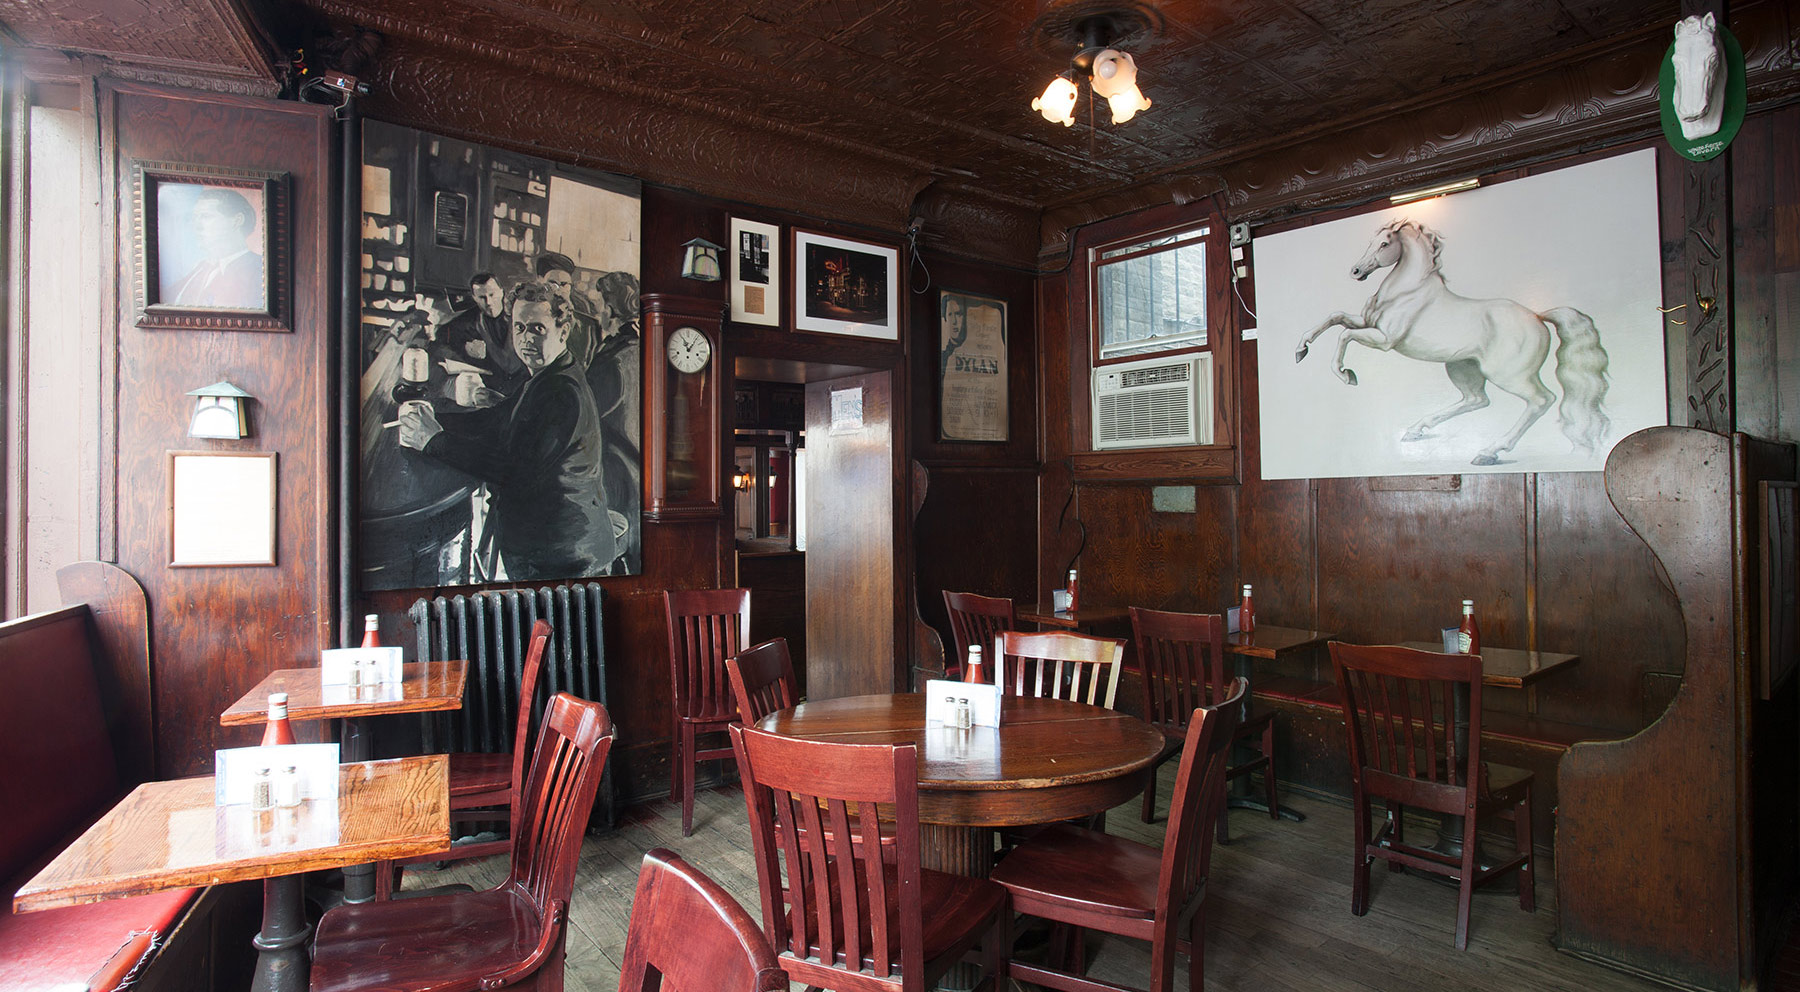 The White Horse Tavern is a legendary literary gathering place